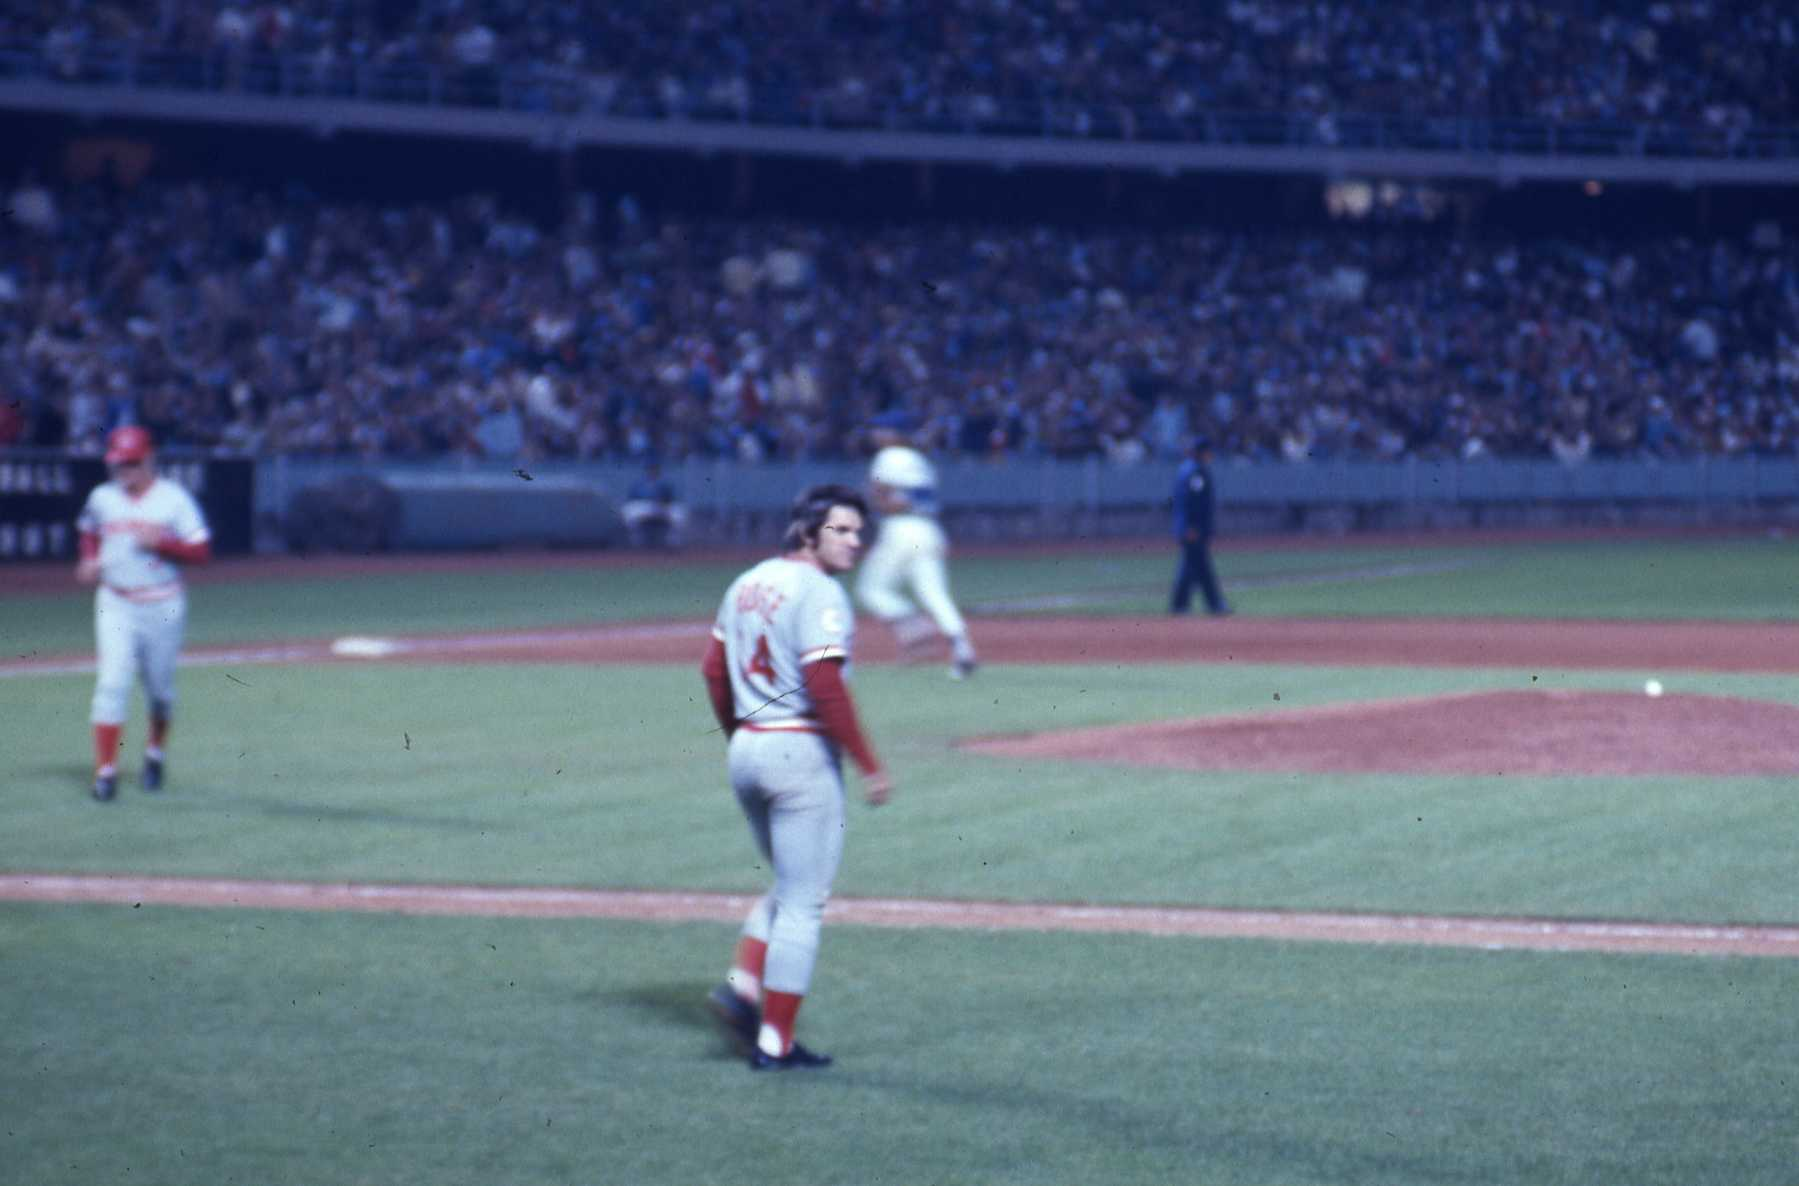 the controversy surrounding the exclusion of pete rose in the baseball hall of fame